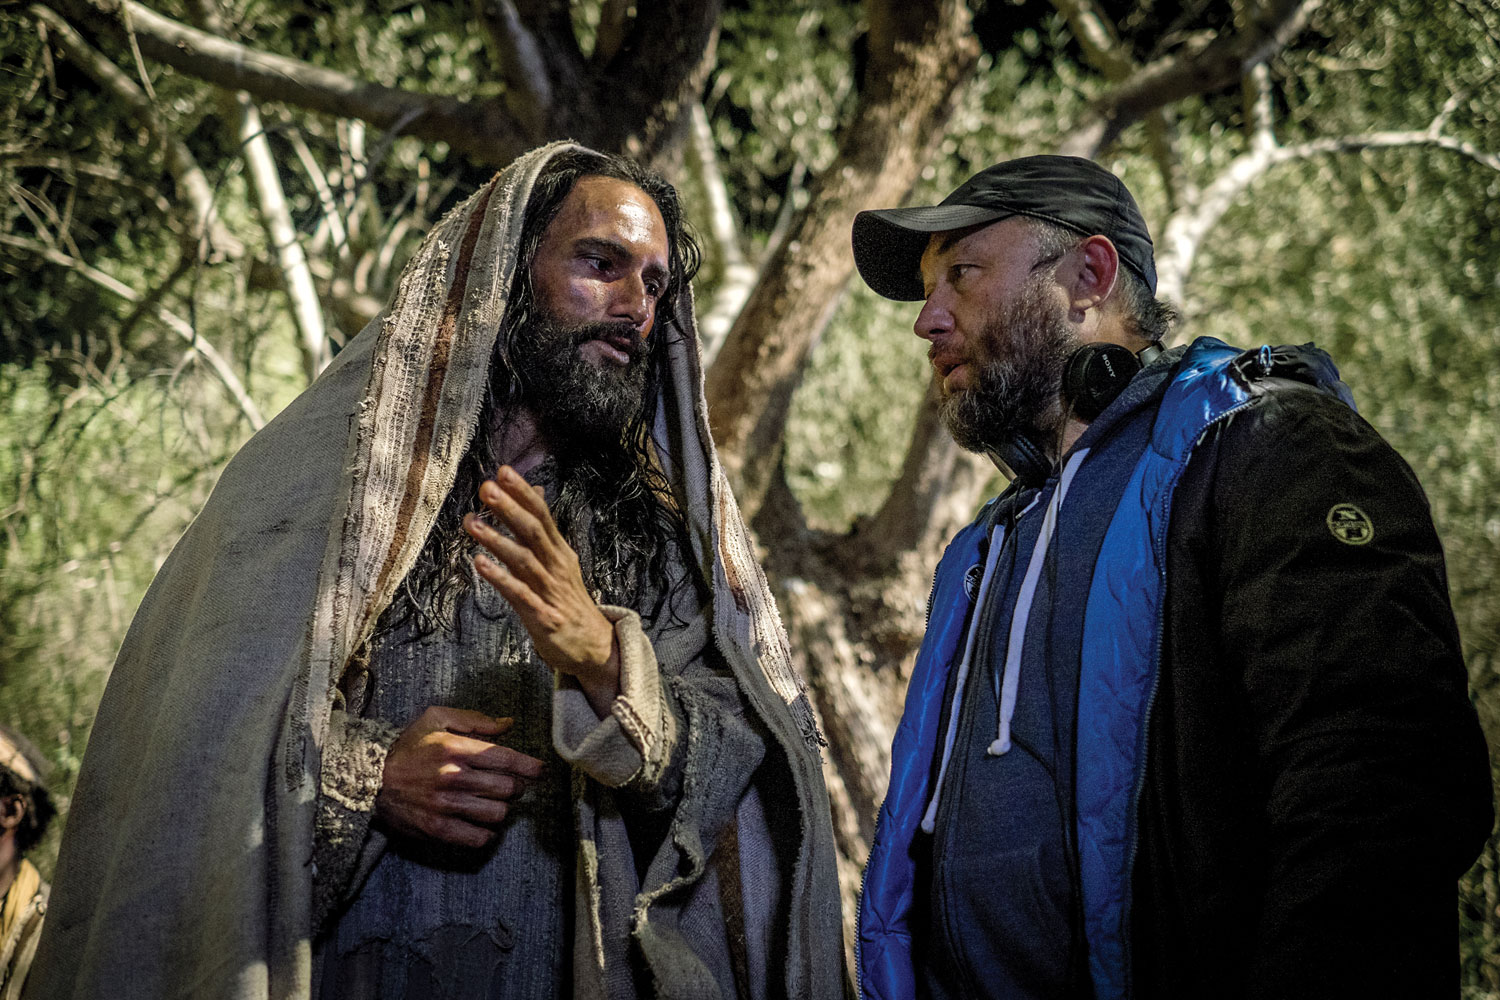 Rodrigo Santoro as Jesus and Director Timur Bekmambetov on the set of Ben-Hur from Metro-Goldwyn-Mayer Pictures and Paramount Pictures.